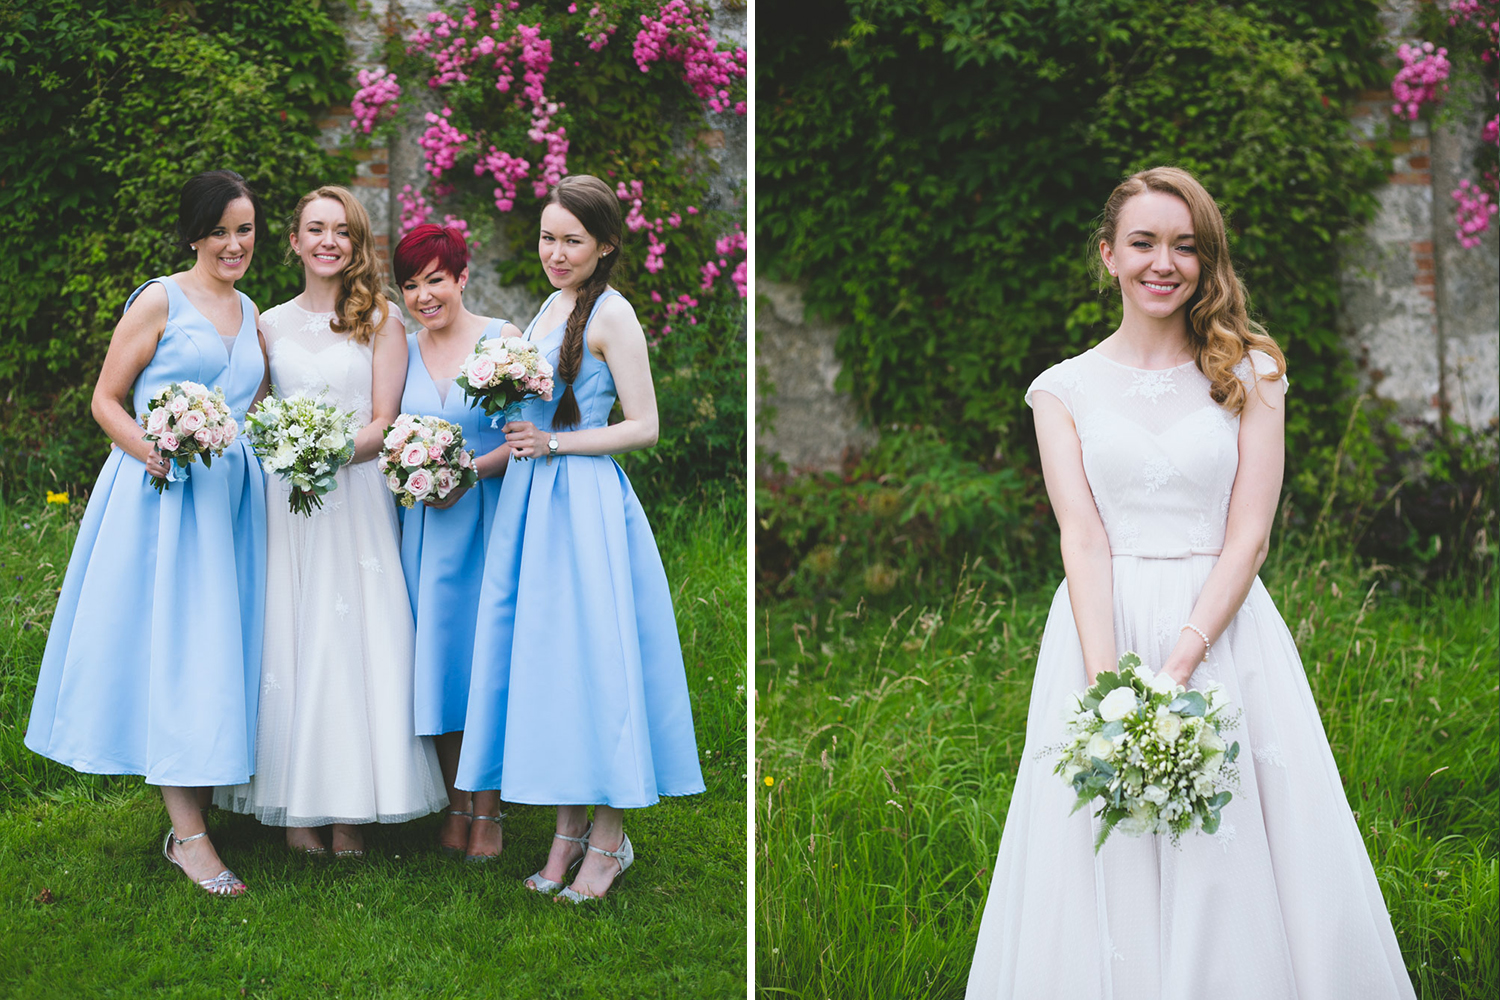 Summer wedding at Kilyon Manor shot by Caroline Mc Nally at Wild Things Wed Photography